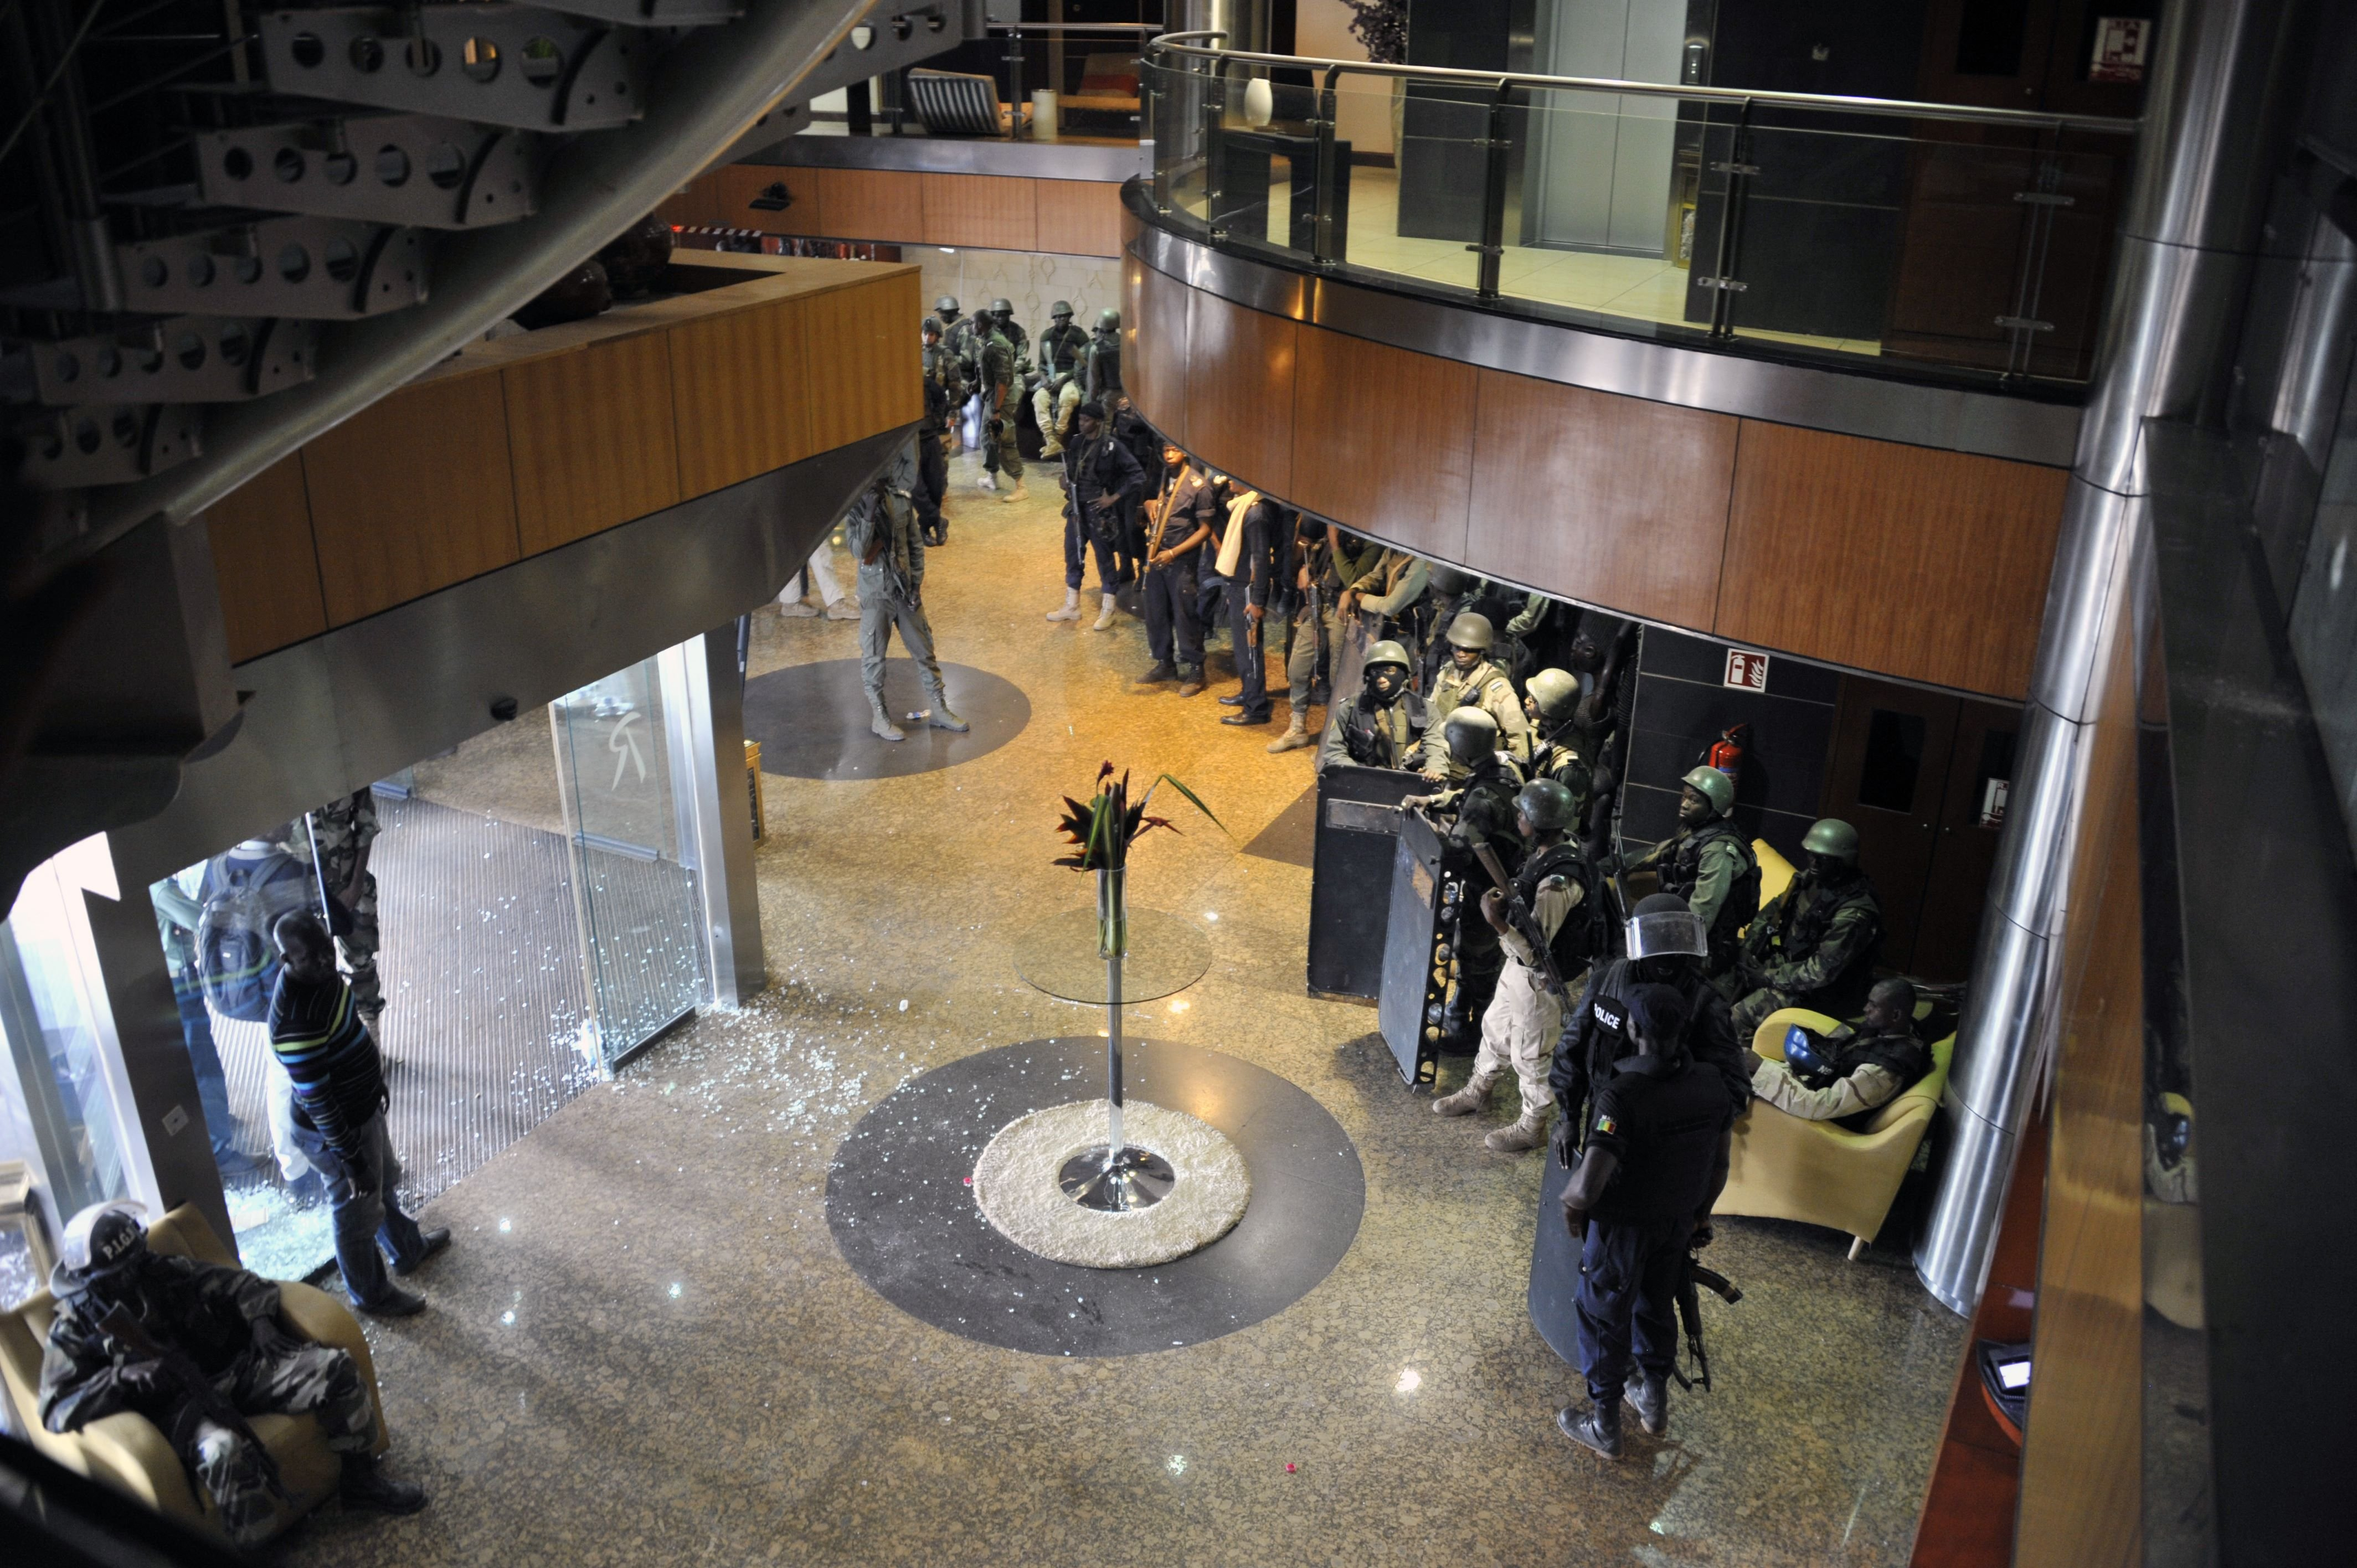 Members of special forces are seen inside the Radisson Blu hotel after the assault of security forces in Bamako, Mali on Nov. 20, 2015.